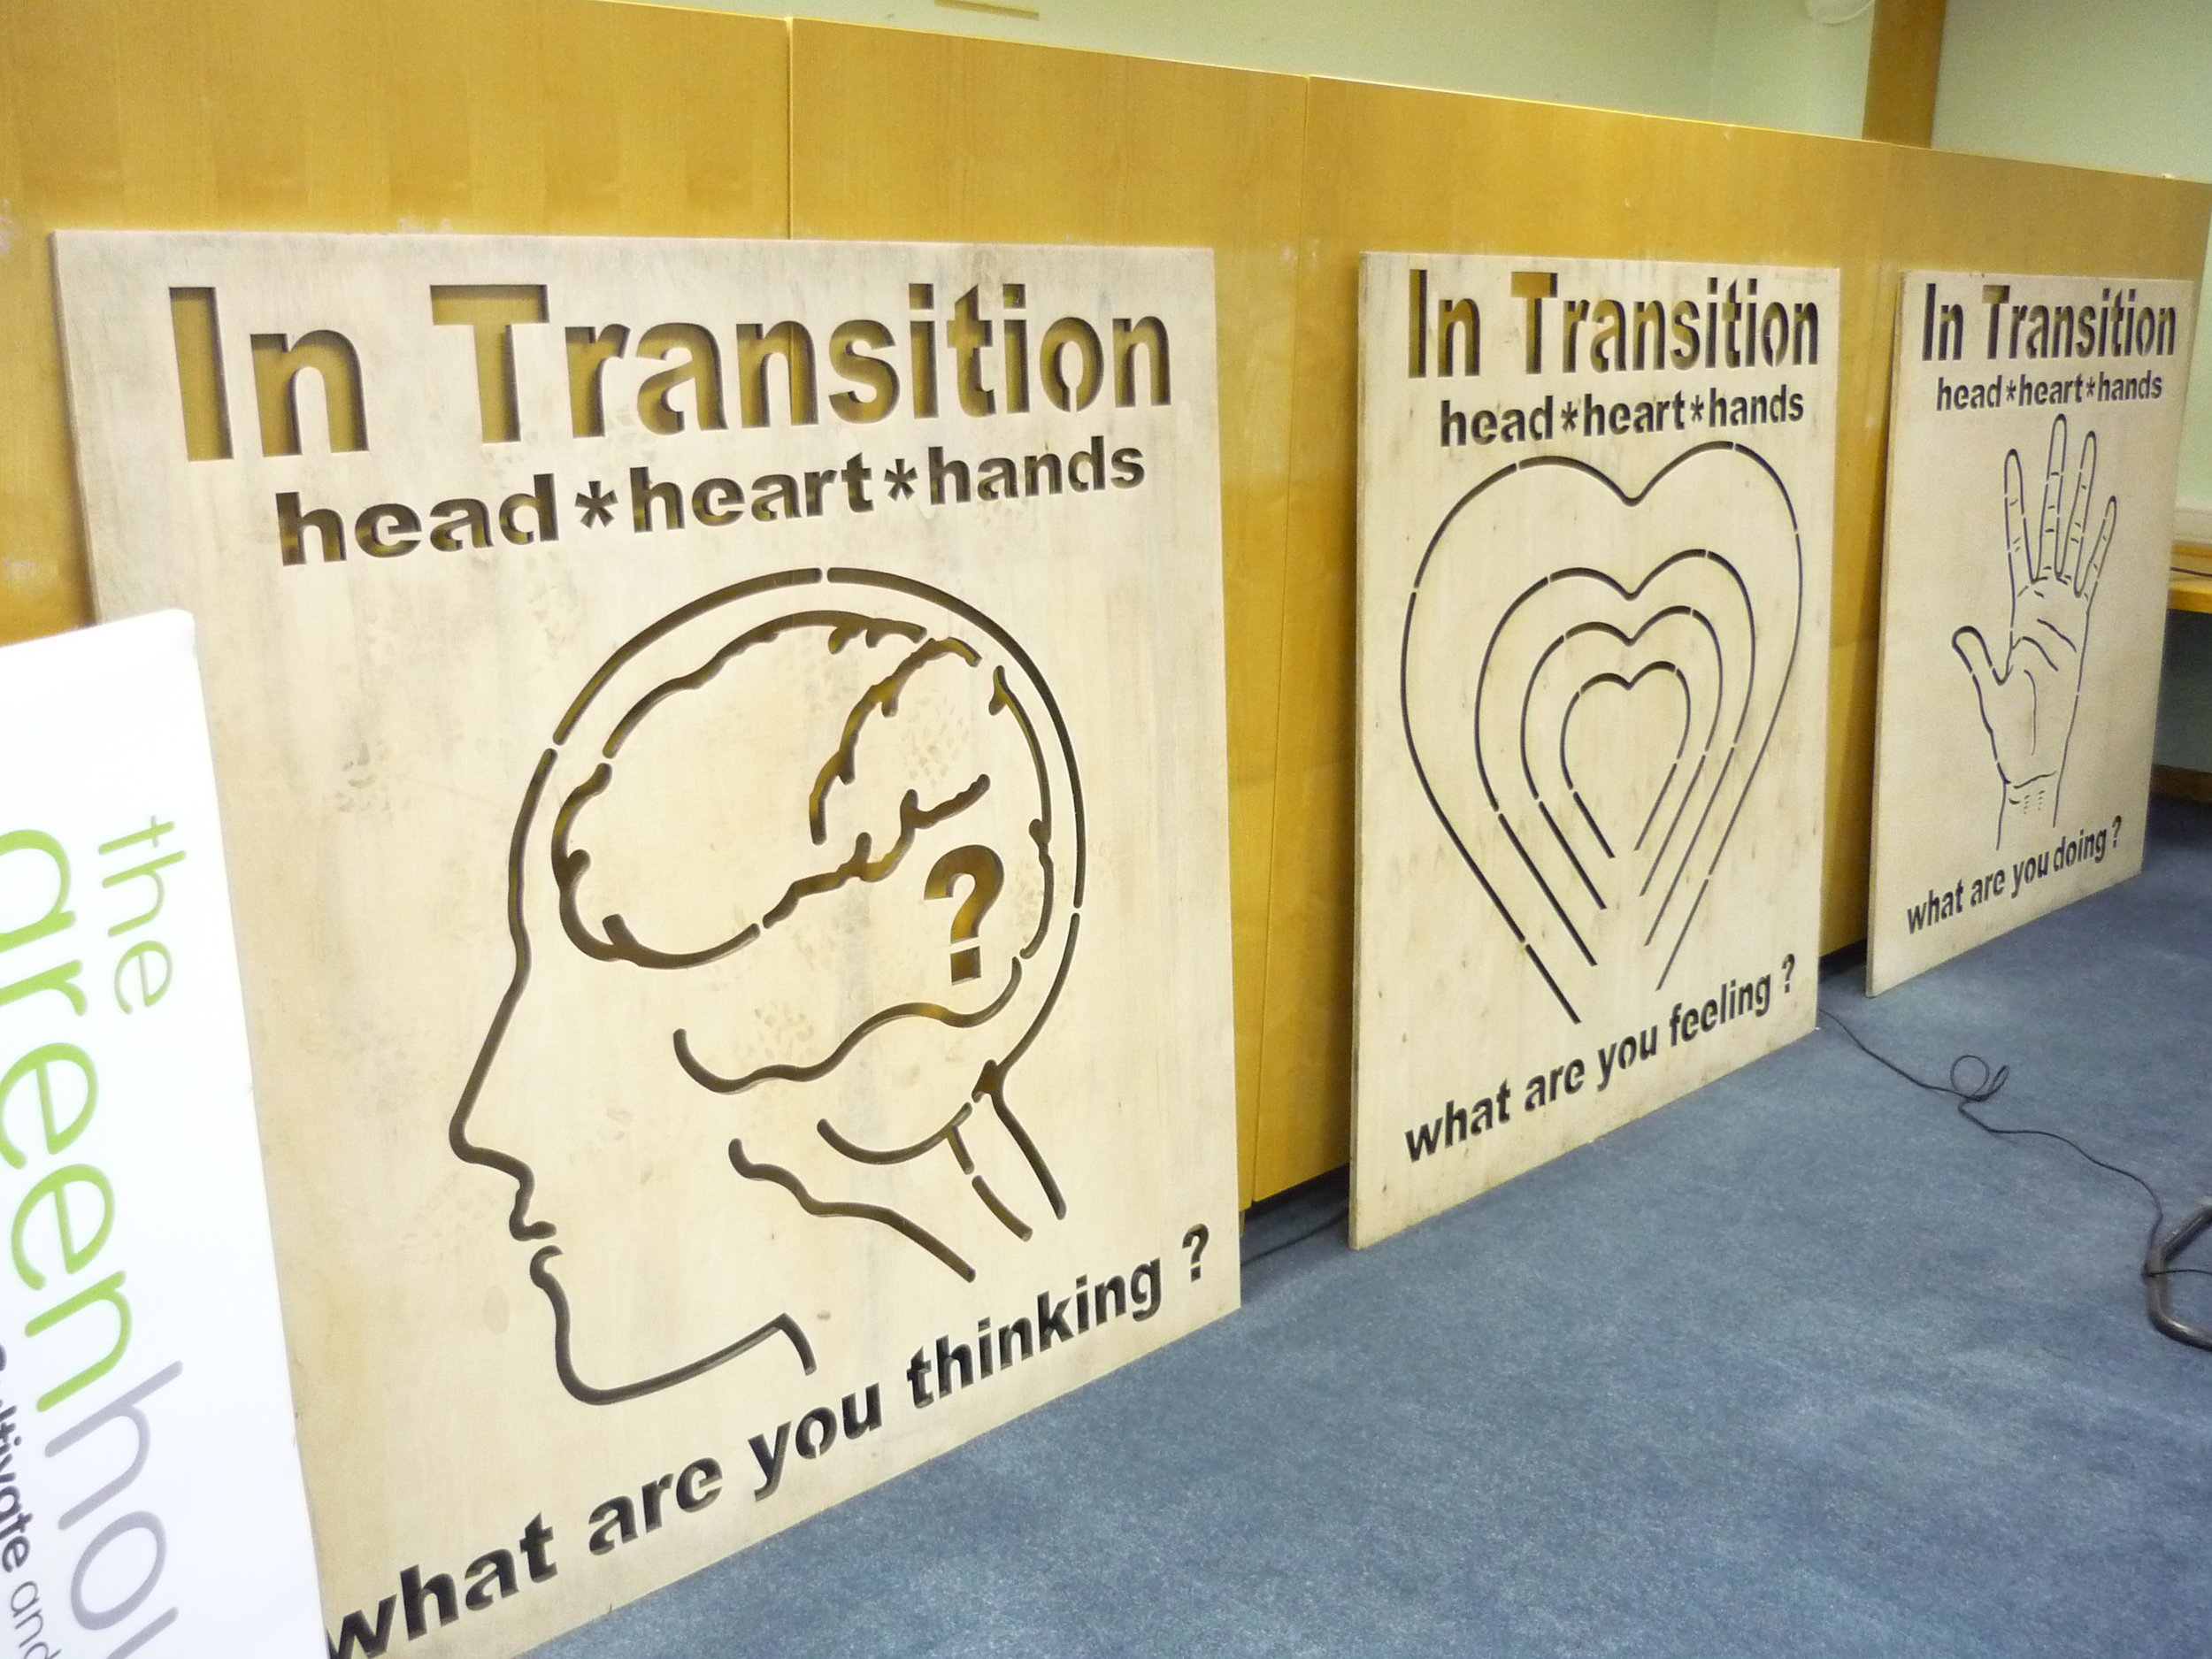 Transition: thoughts, emotions, action.